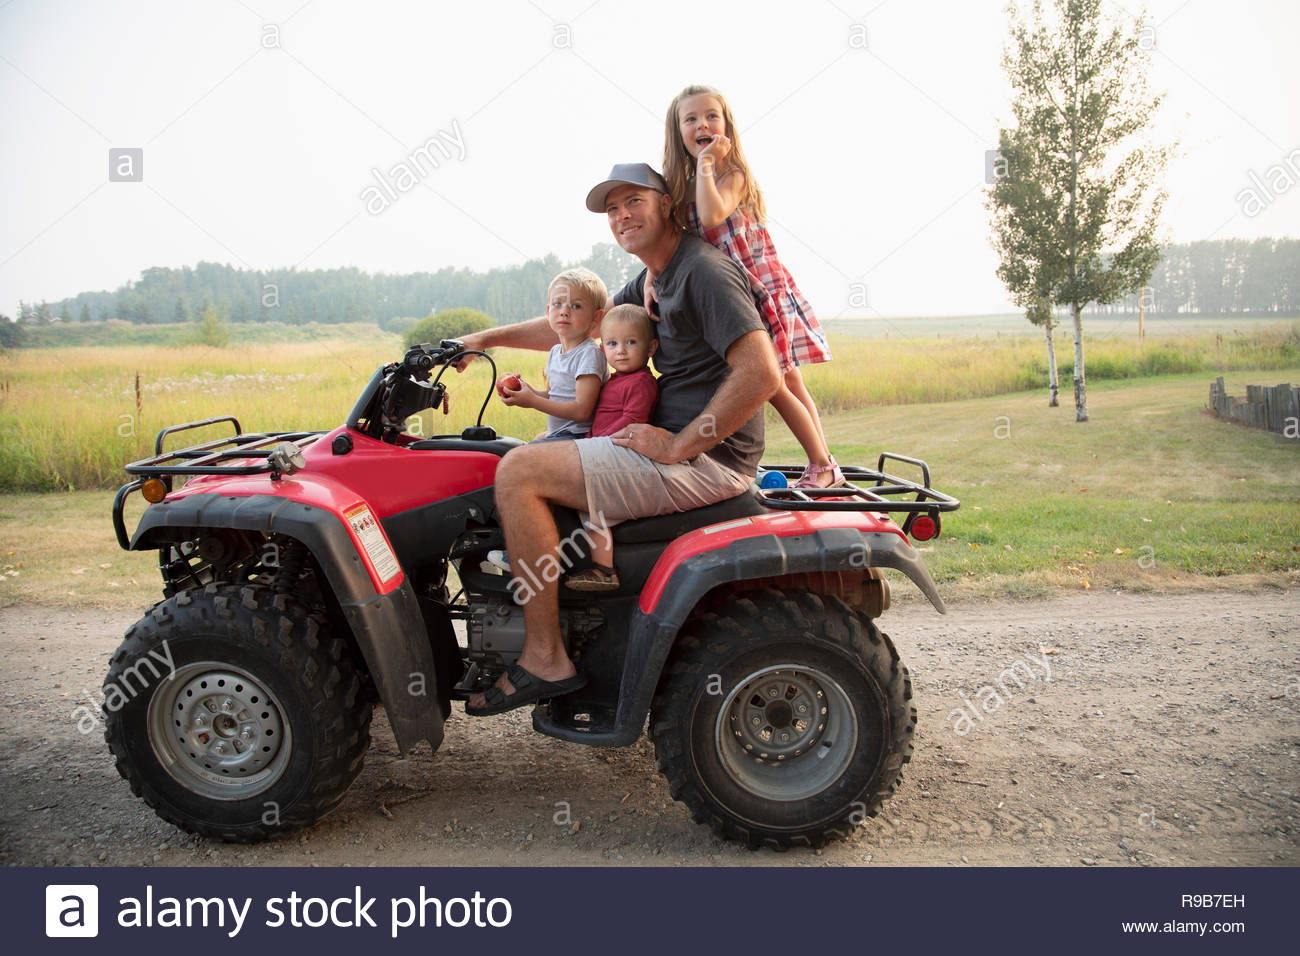 Portrait father and young children riding quadbike on farm - Stock Image